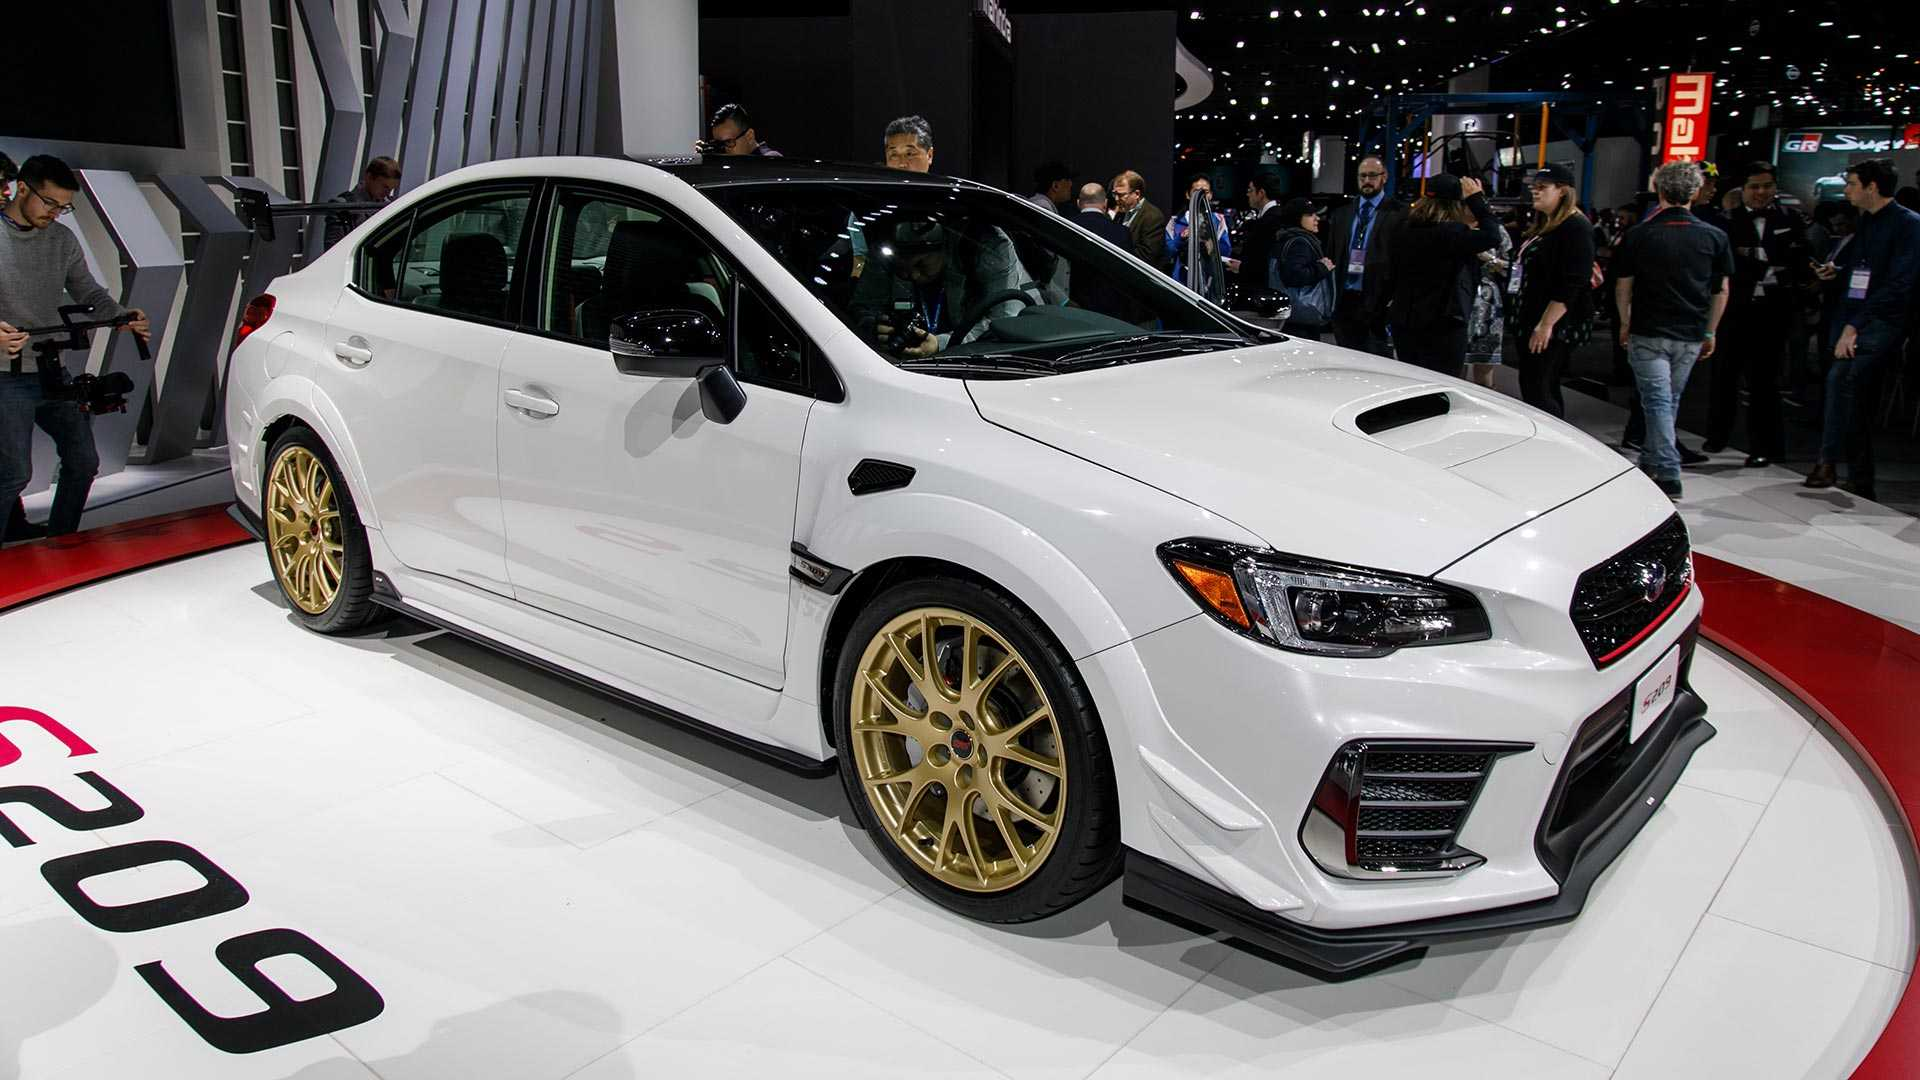 33 The Best 2019 Subaru Sti Price Design And Review